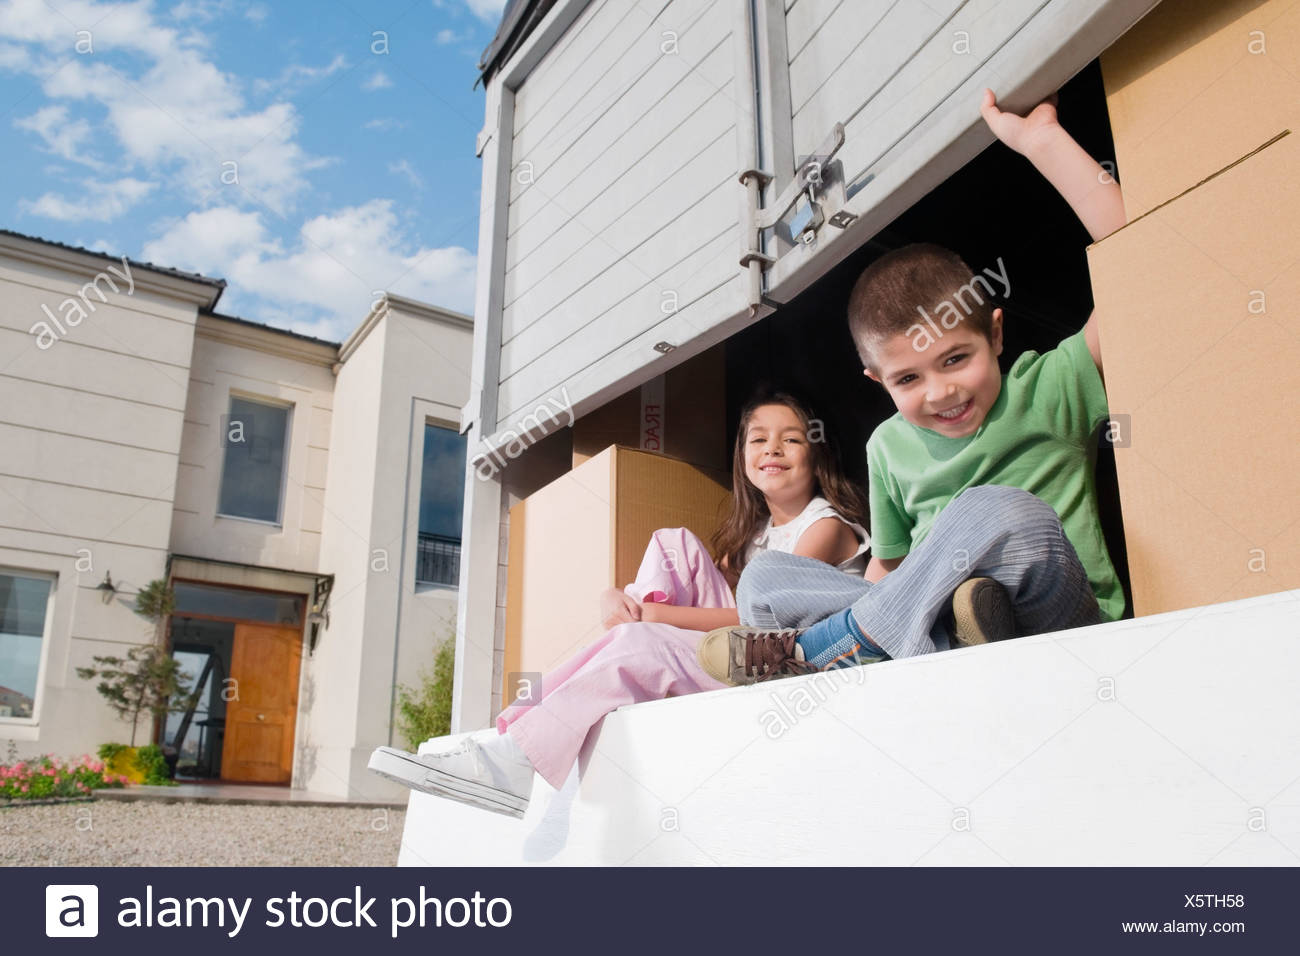 Portrait of a boy sitting with his sister in a pick-up truck and smiling - Stock Image